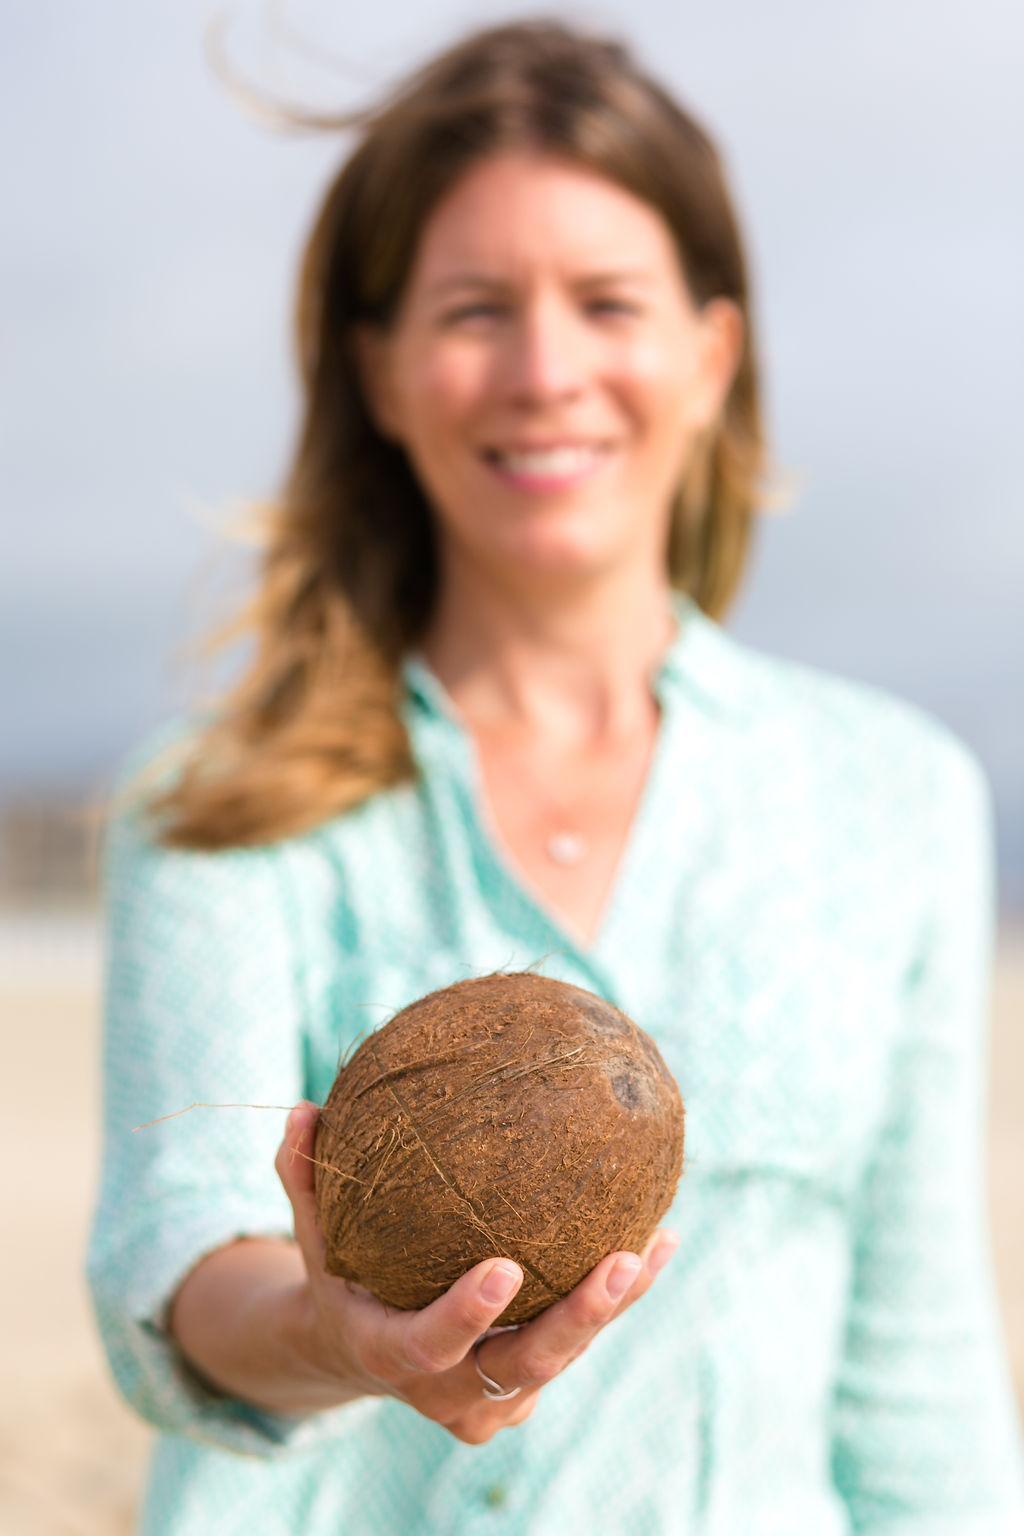 Confused about coconut? - According to The American College of Allergy, Asthma, & Immunology,